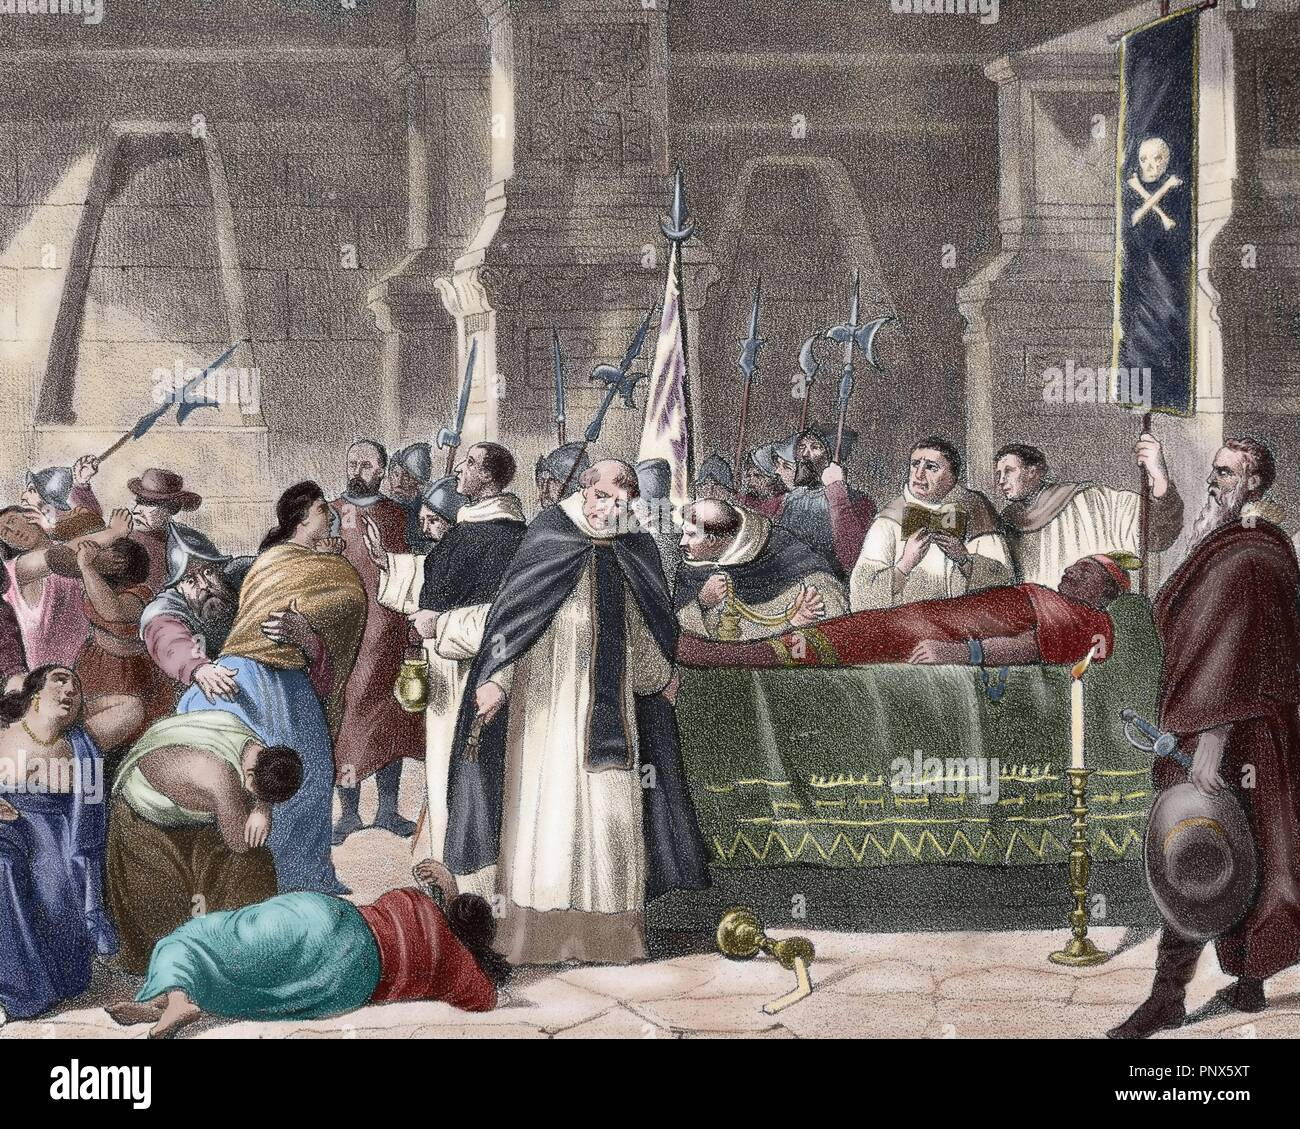 Atahualpa (1497-1533). Last Sapa Inca. Death of Atahualpa. Funeral. To the right of the picture, Francisco Pizarro dressed in mourning. Colored engraving. - Stock Image